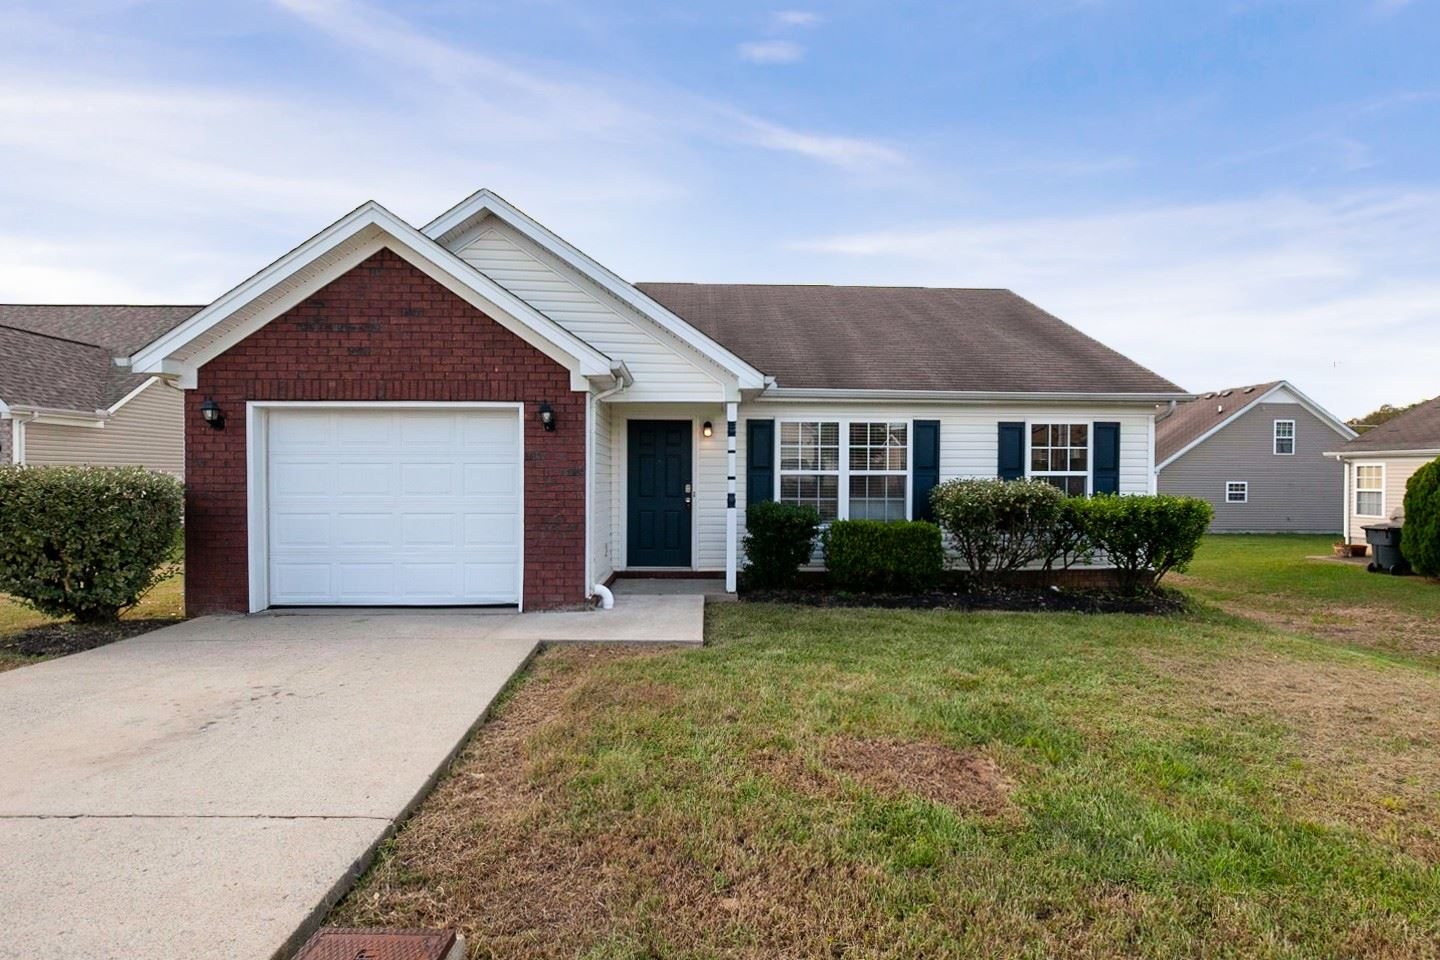 1404 Chesterbrook Ct, Antioch, TN 37013 - MLS#: 2194216